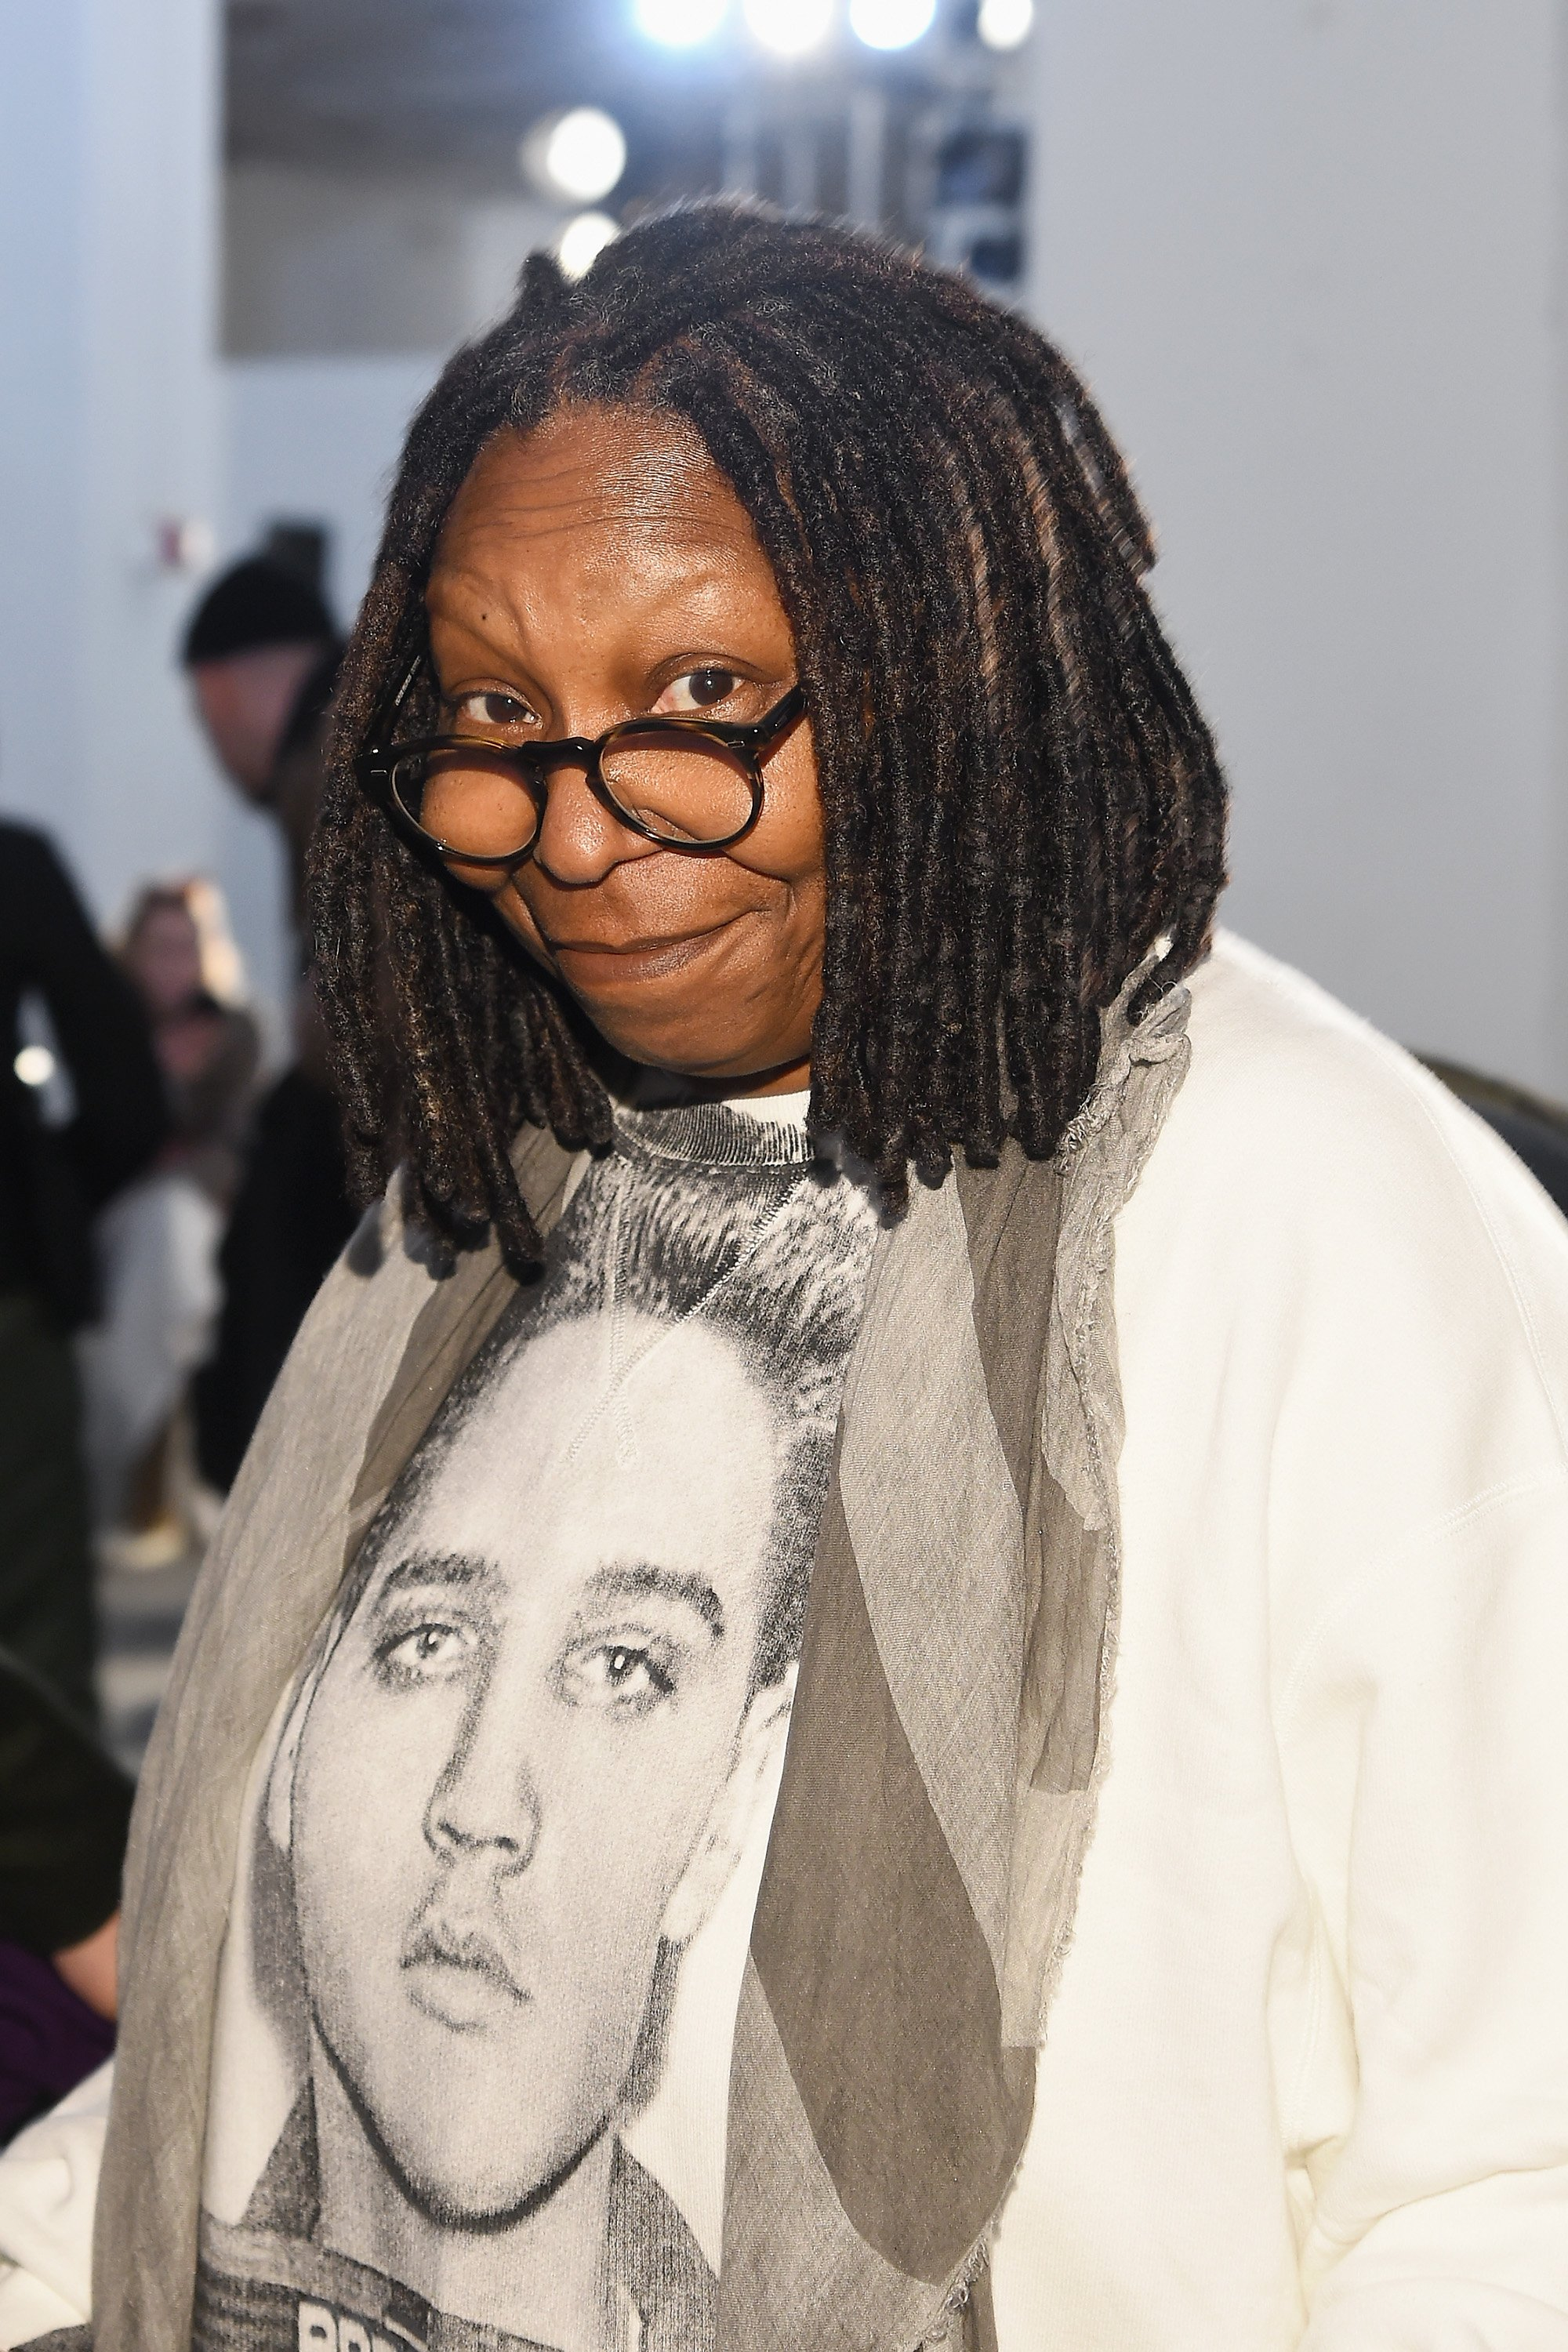 Actress Whoopi Goldberg at the R13 fashion show during New York Fashion Week on February 10, 2018.   Photo: Getty Images